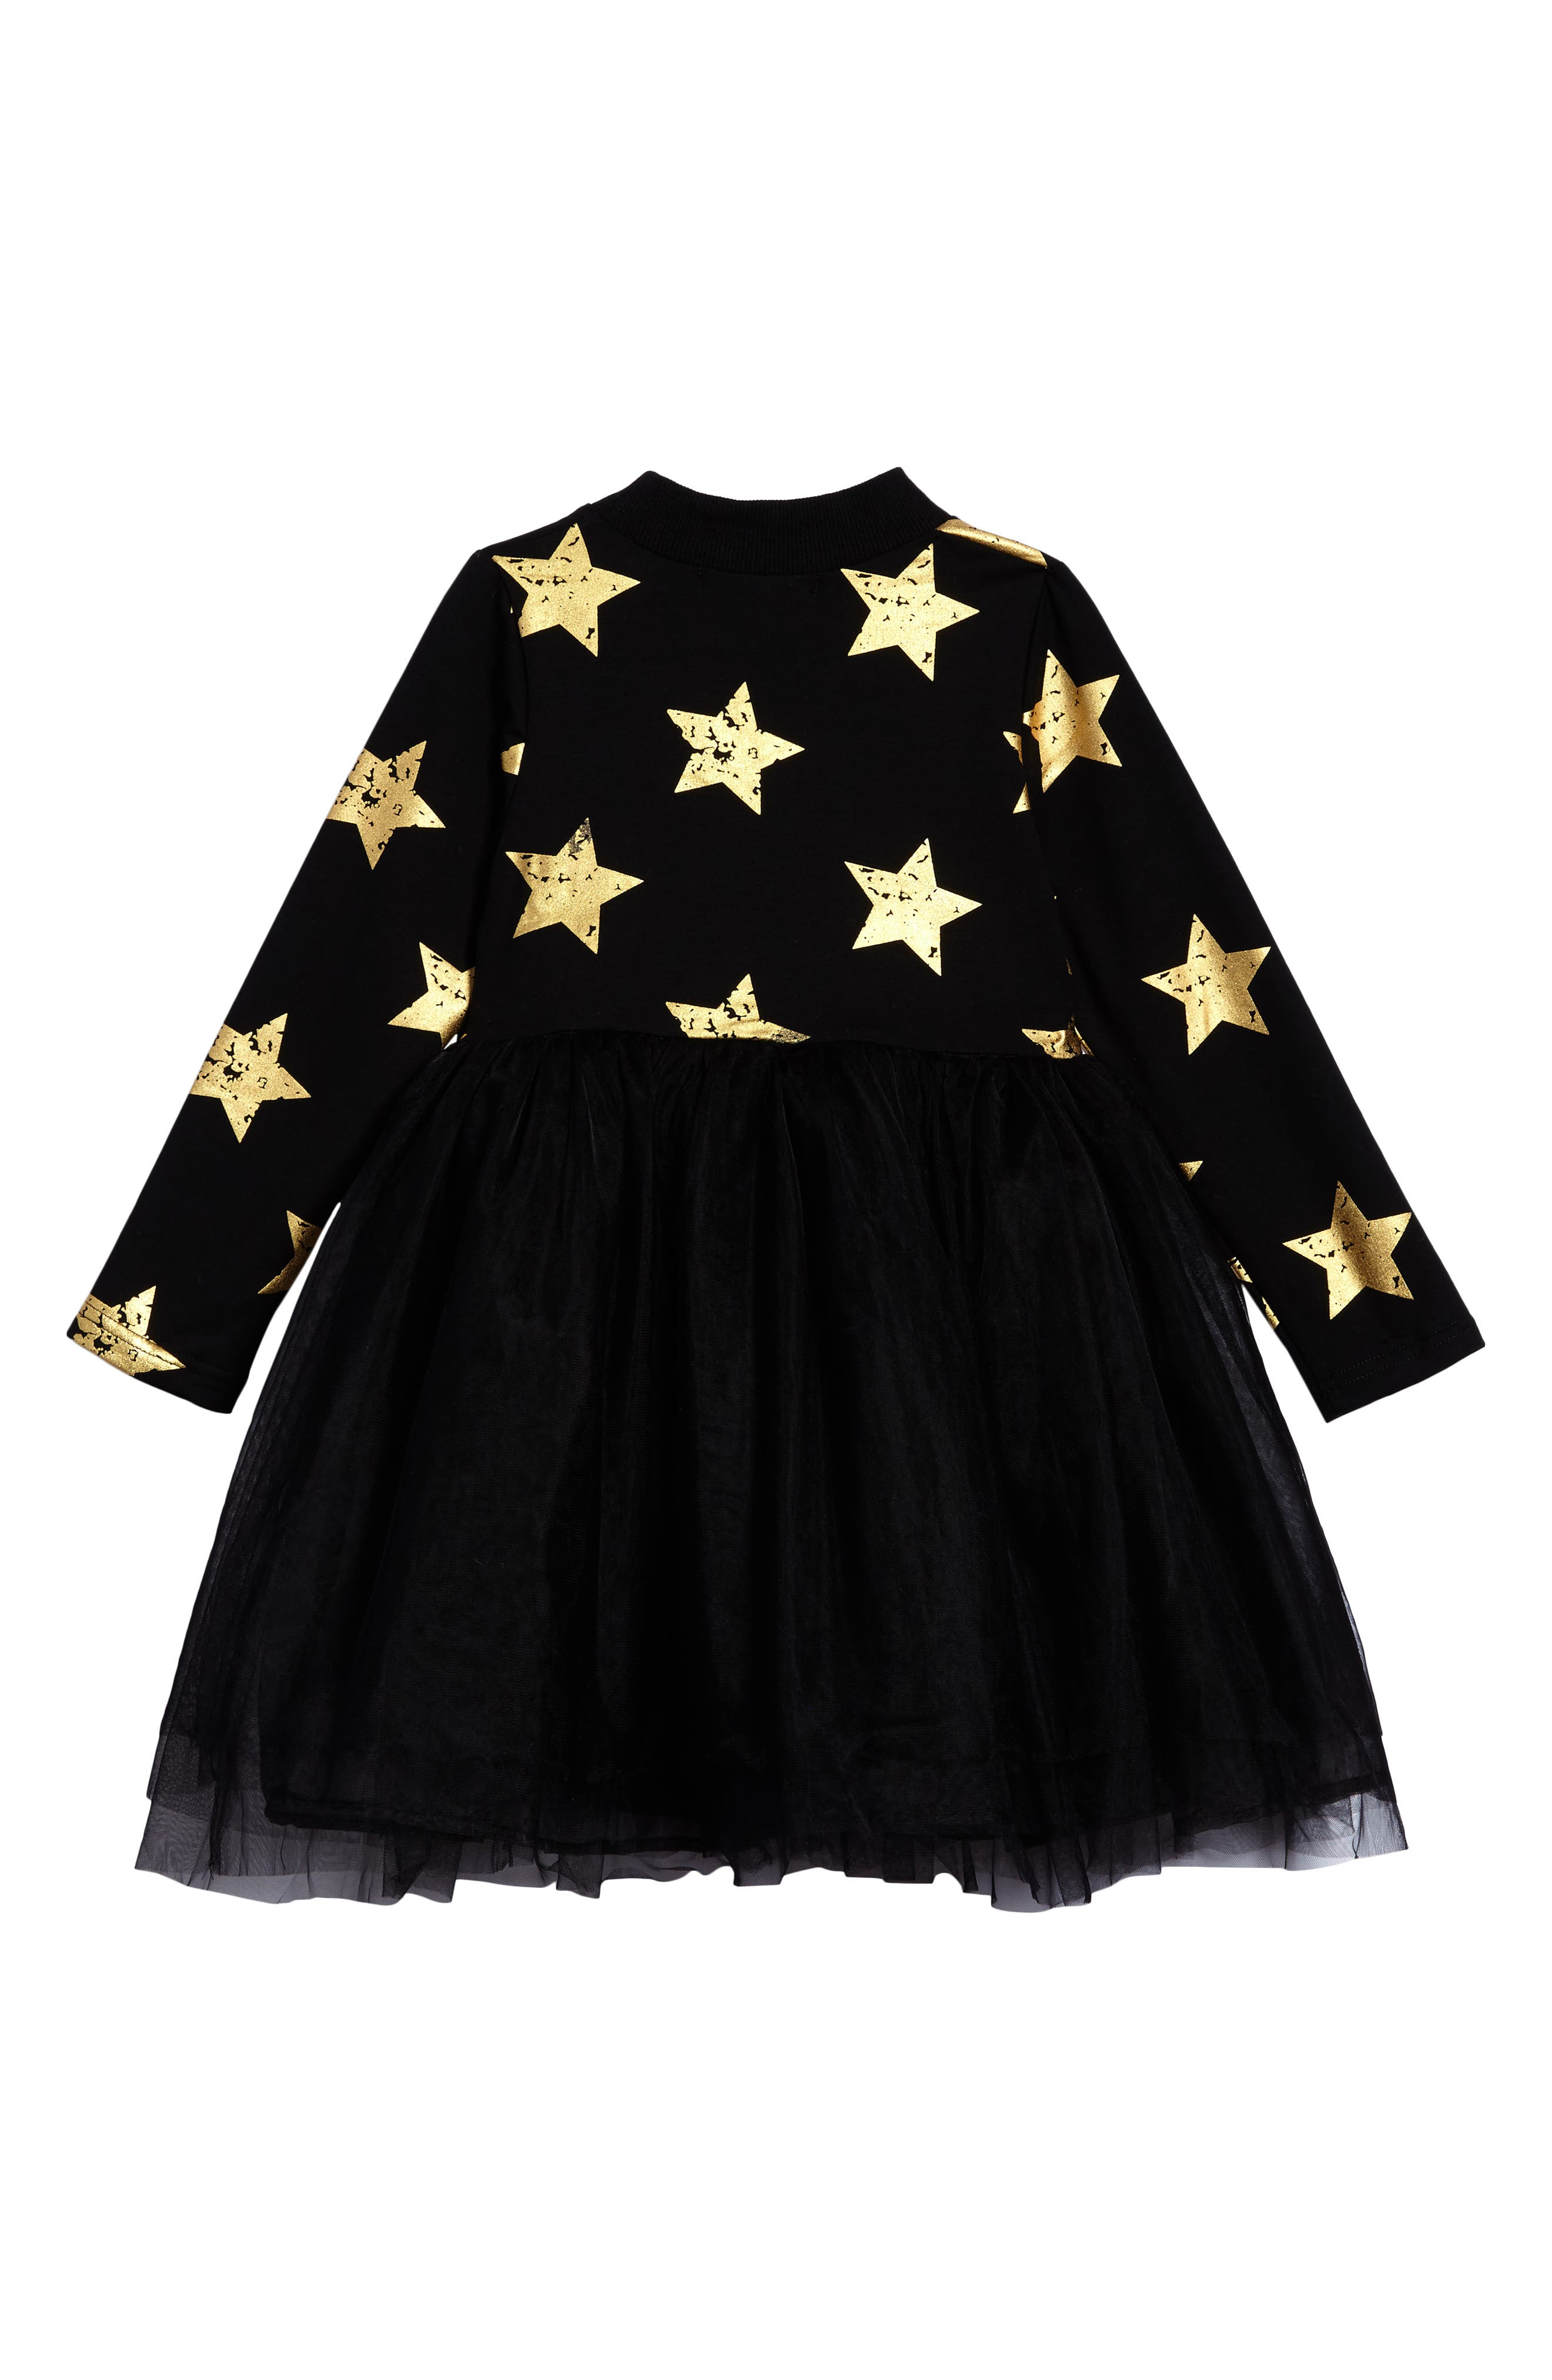 Star Tulle Party Dress,                             Alternate thumbnail 2, color,                             001